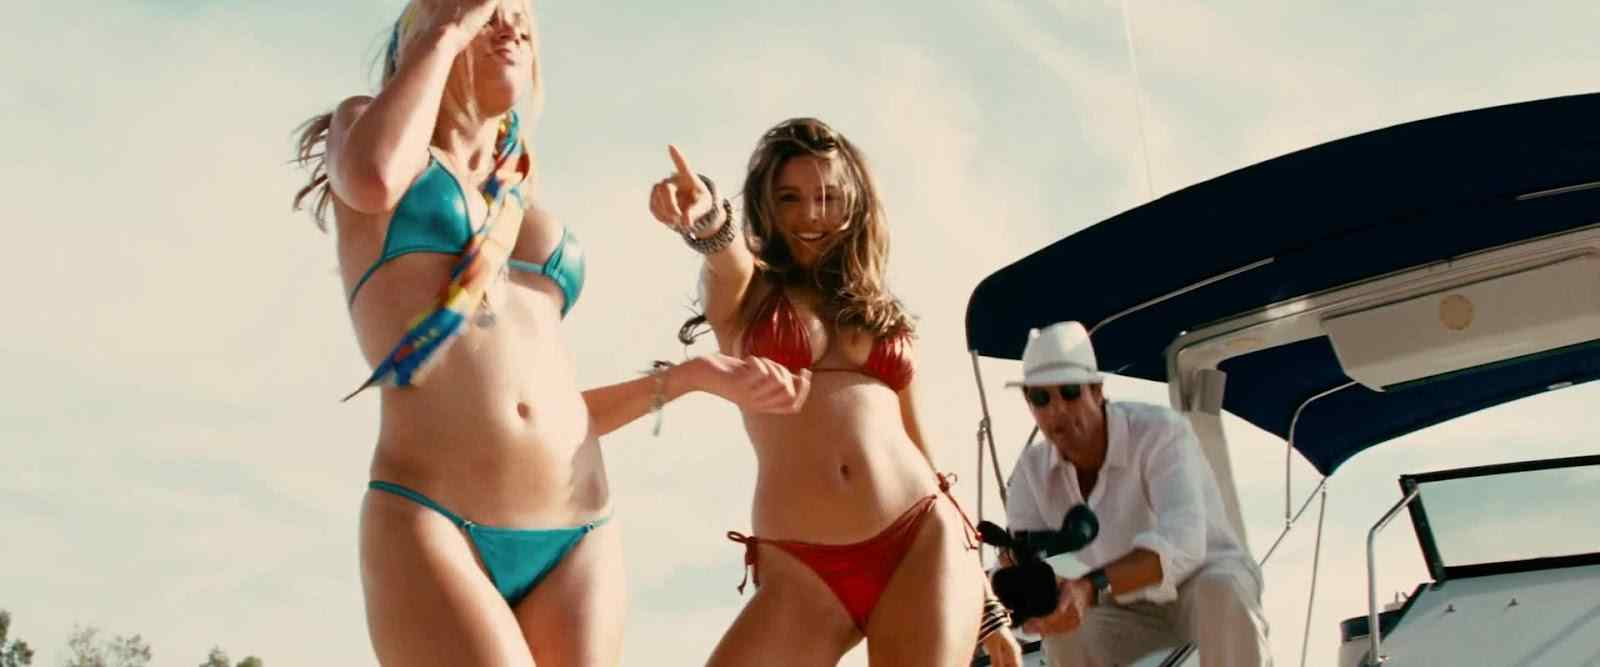 kelly brook from the hit movie Piranha 3d.